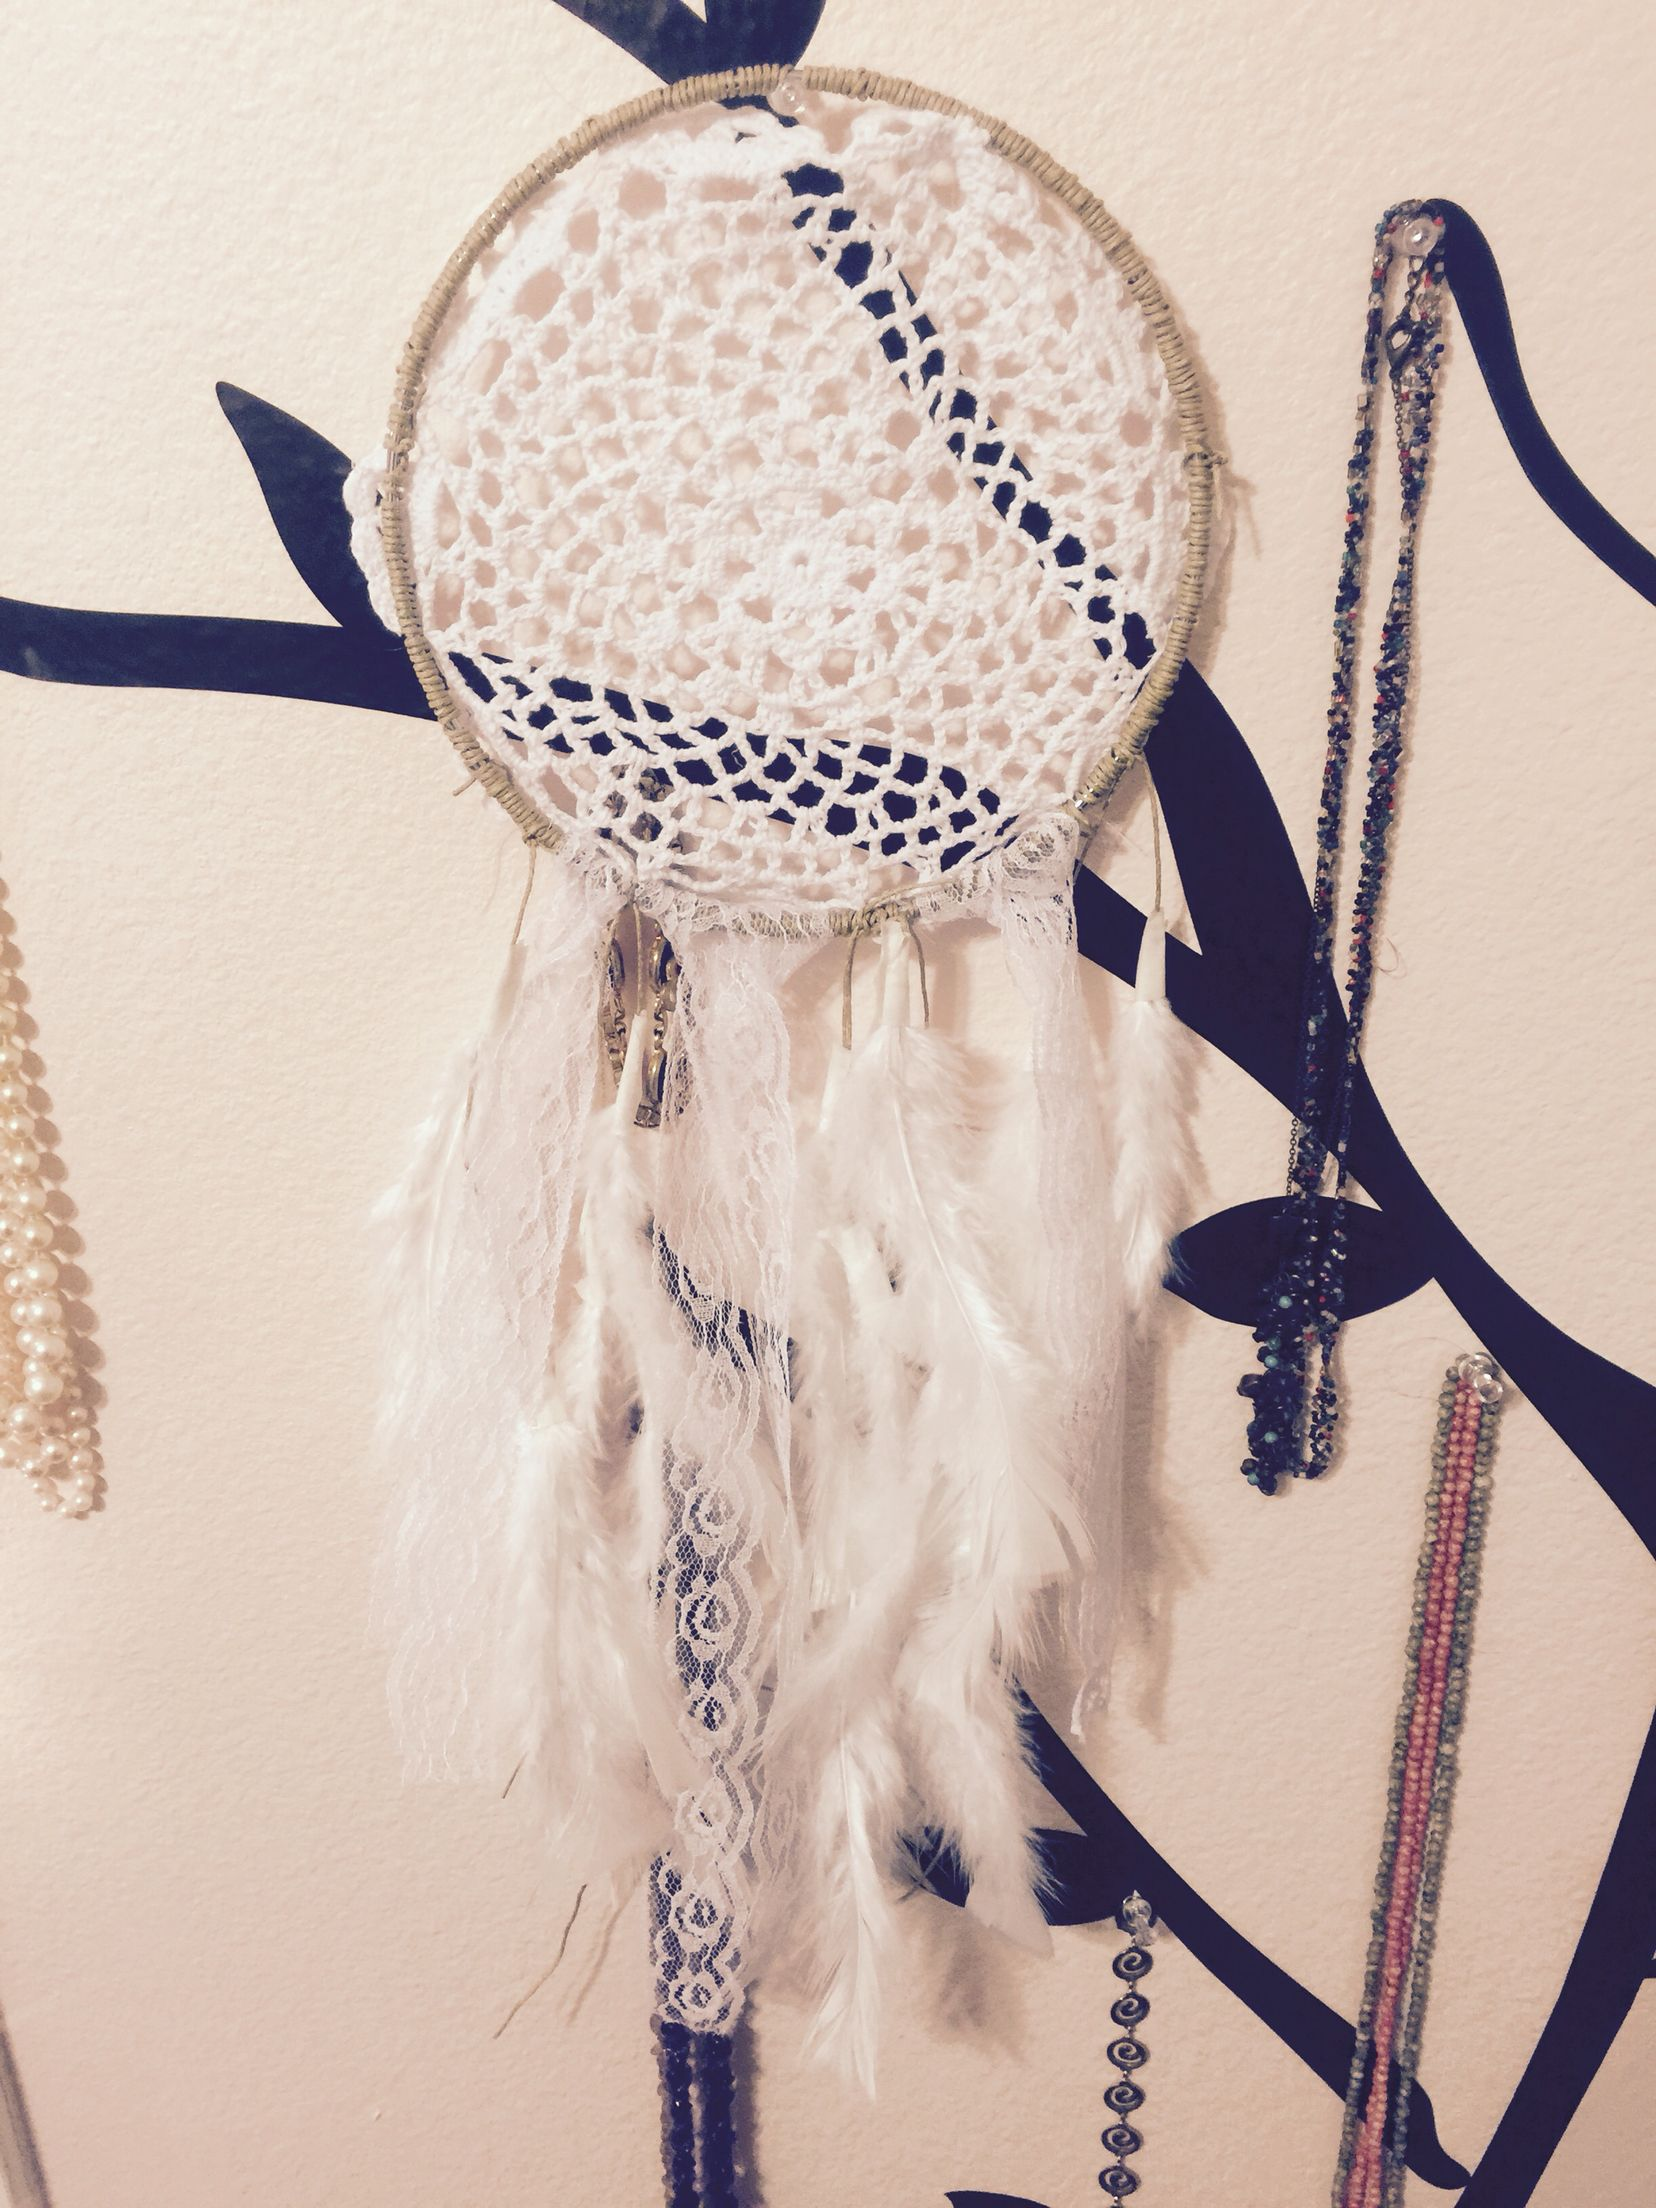 Walmart Dream Catcher Inspiration Metal Ring 3 Pack $5 Michaels Feathers $2 Walmart Lace $3 Walmart Design Decoration